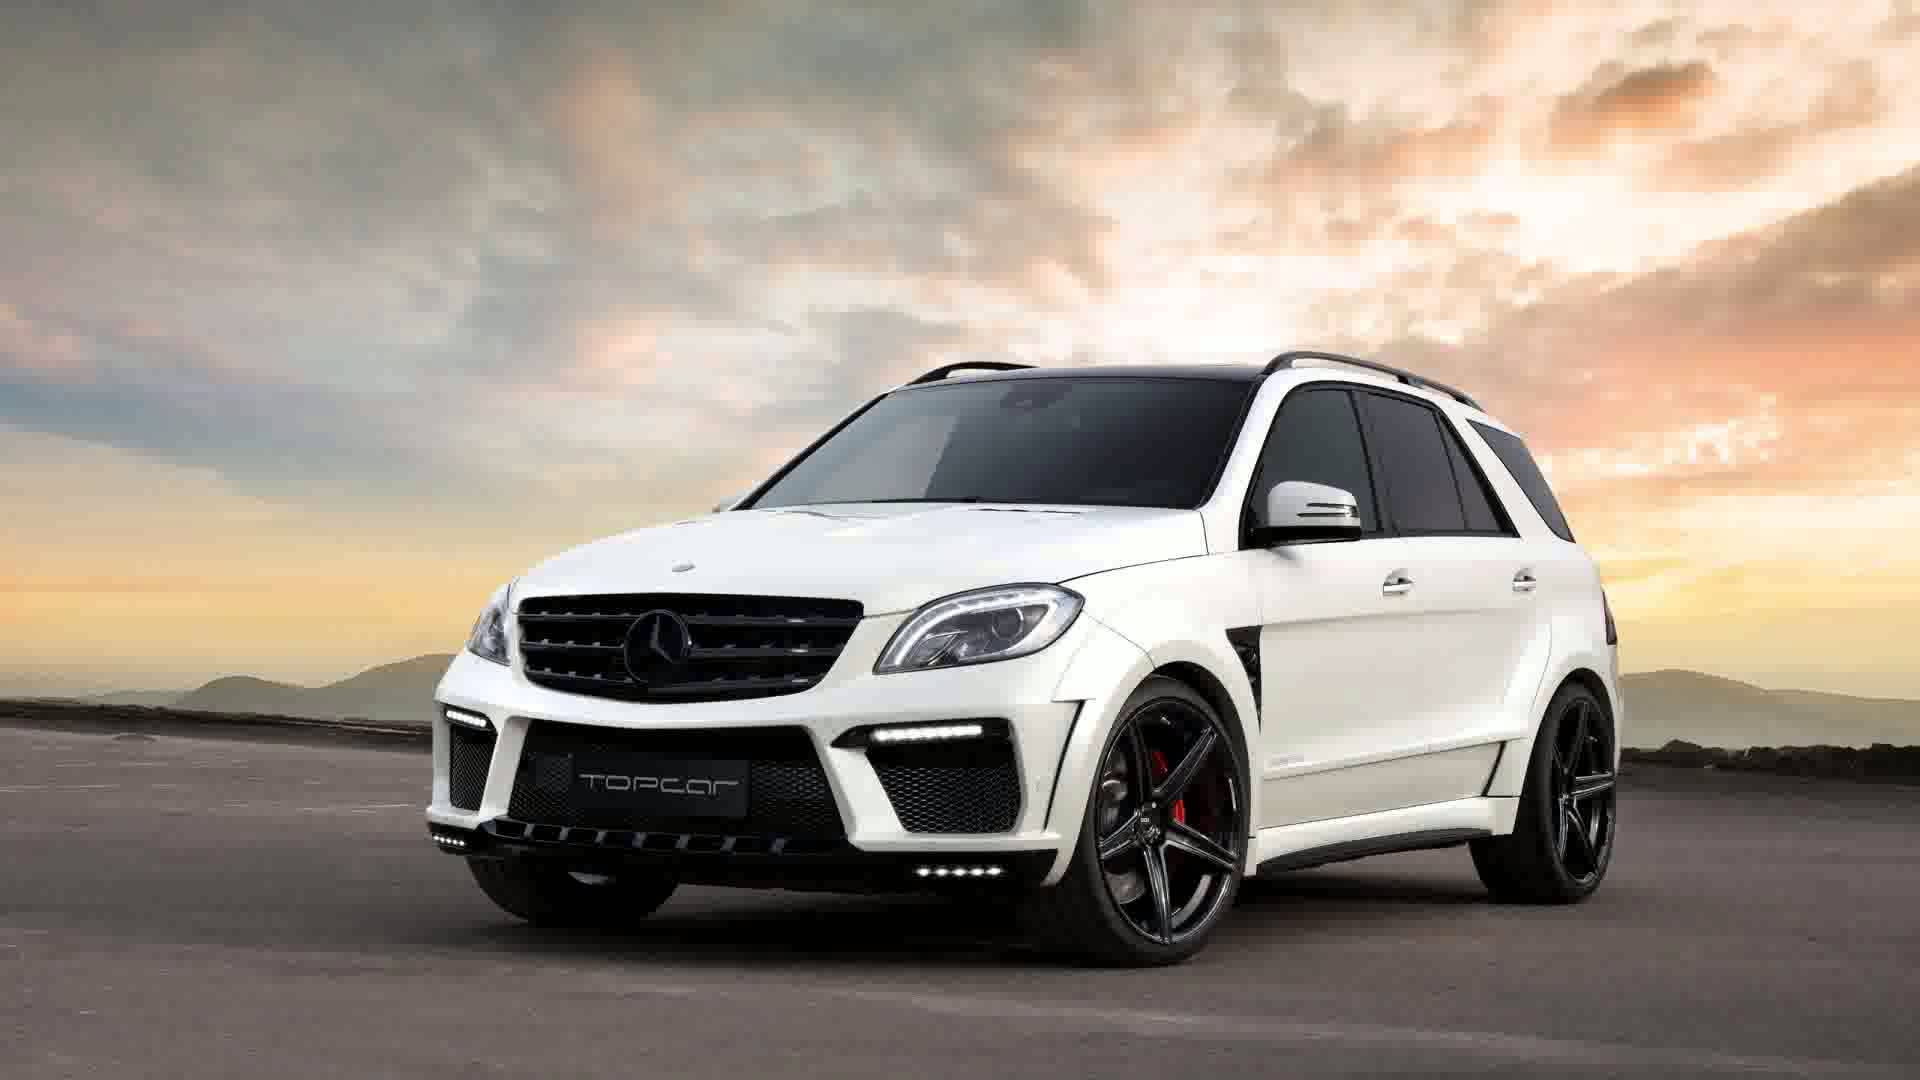 Mercedes benz m class ml63 amg 2015 suv drive for Best looking mercedes benz models